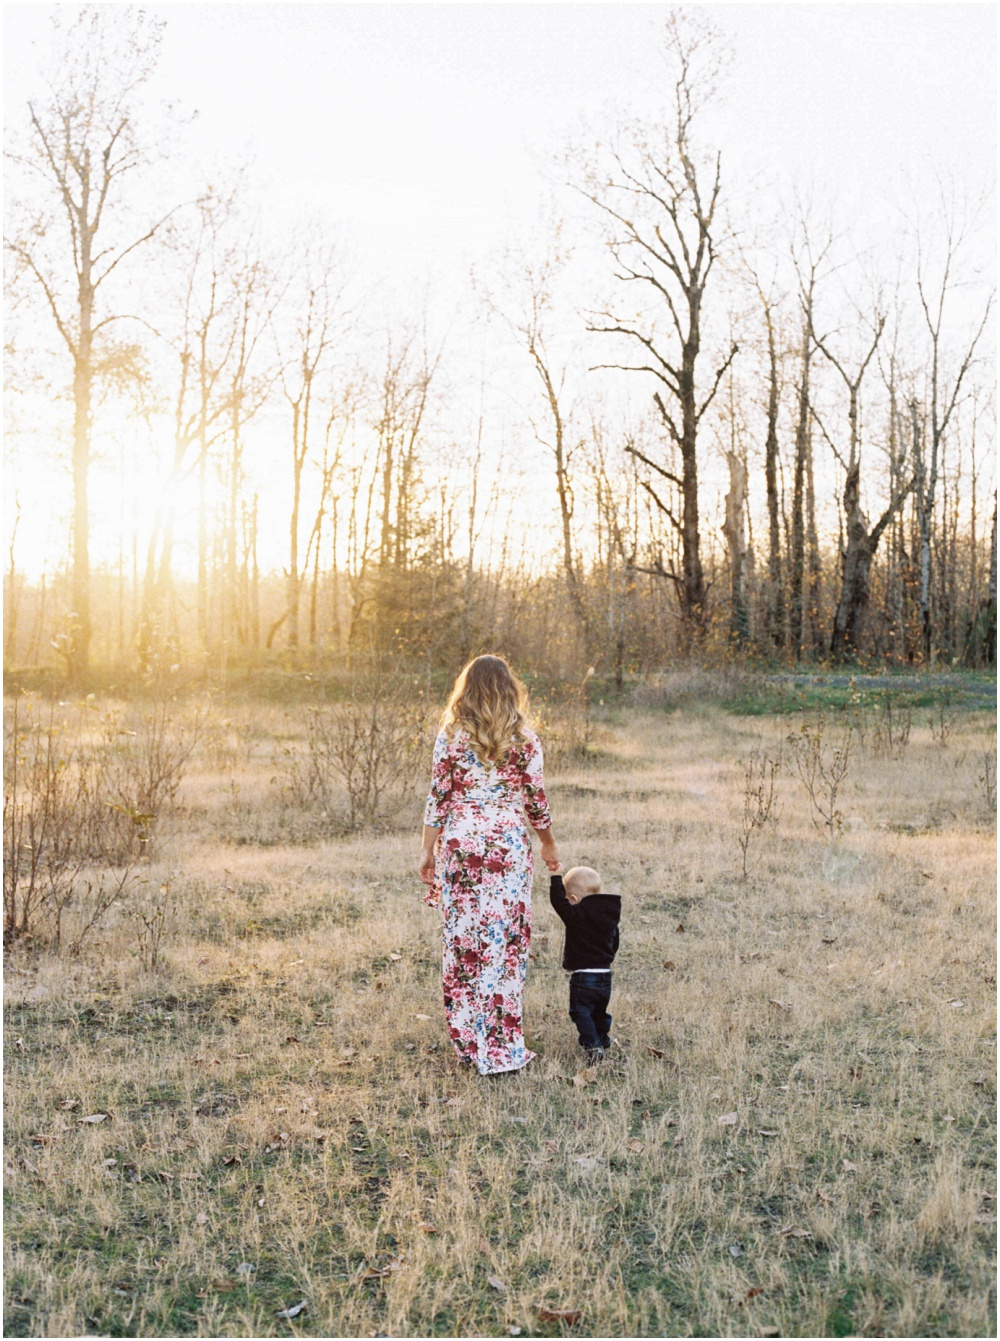 Maternity Photography by Jenni Kupelian and featured on The Fount Collective, a lifestyle publication and community devoted to the art of being a mother 10.jpg